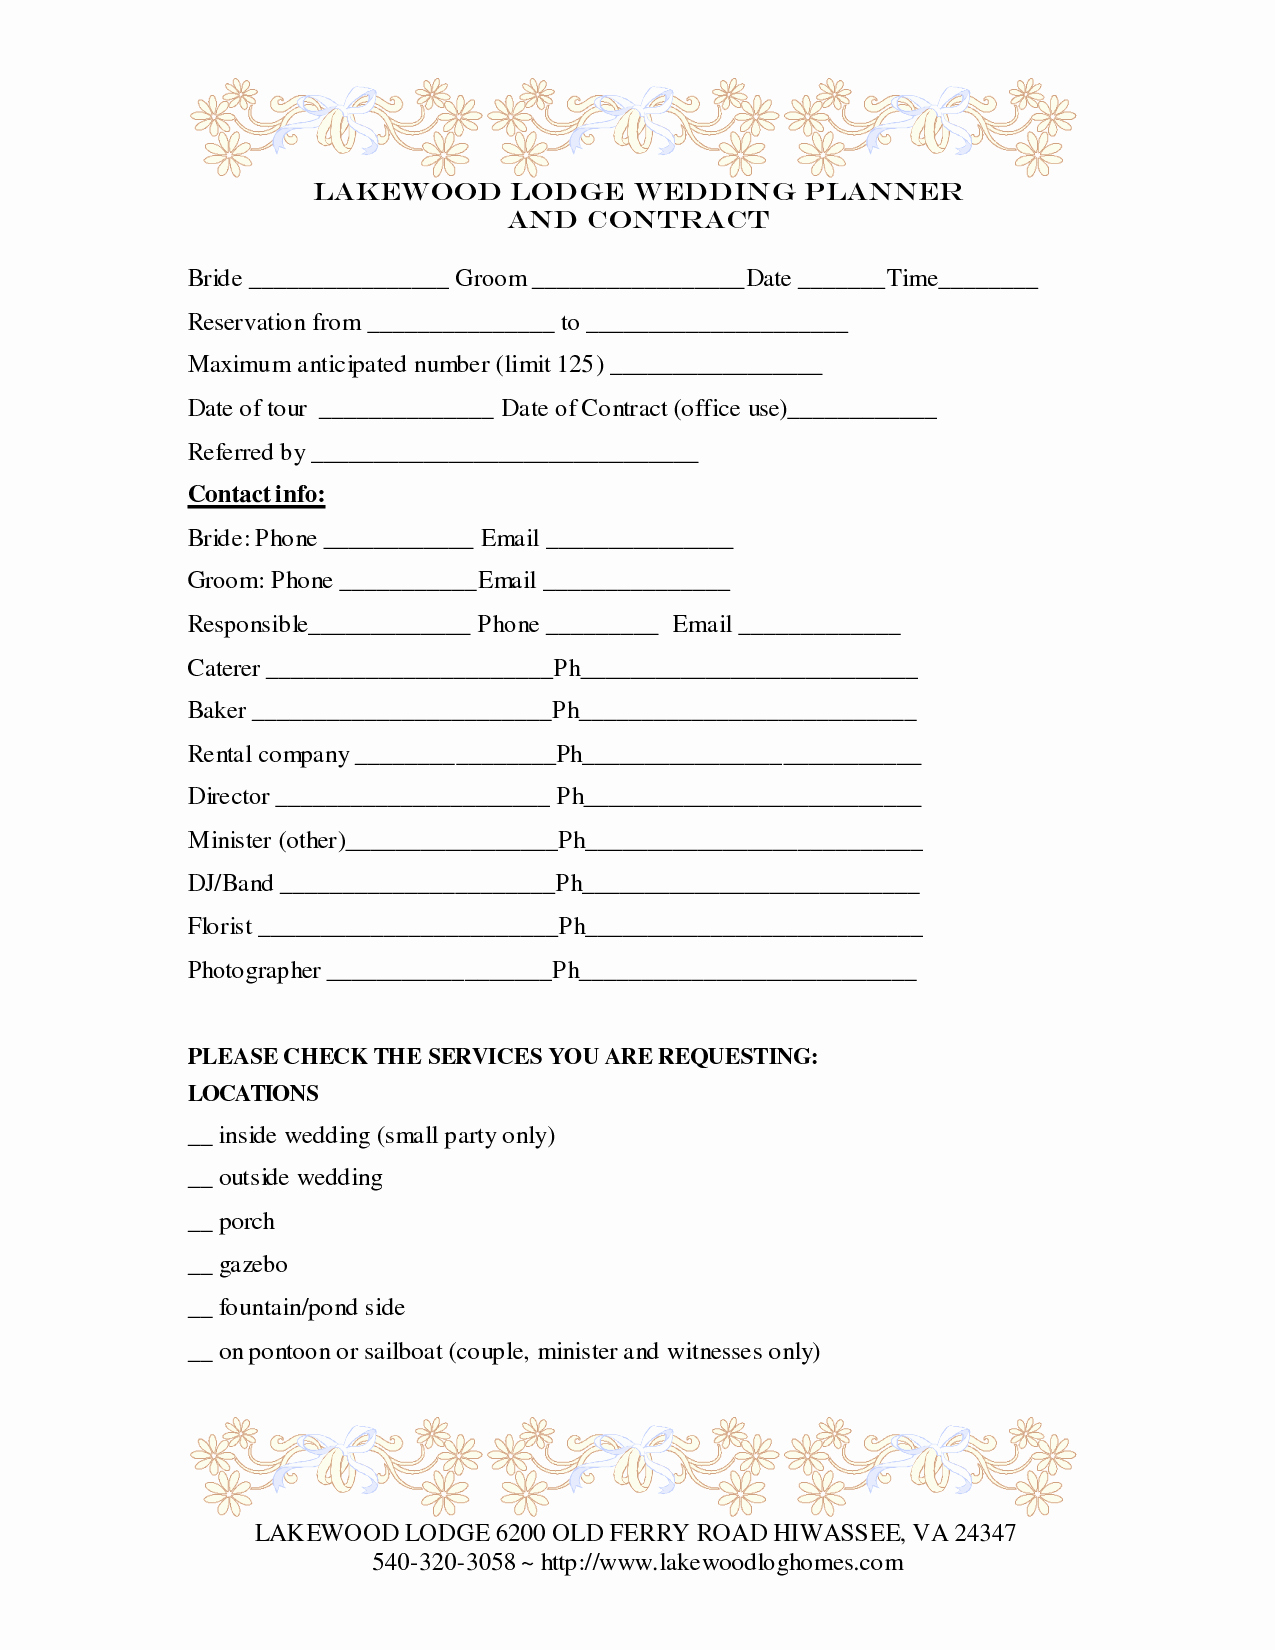 Event Planning Contract Template Awesome 7 Best Of Printable Wedding Planner Contract